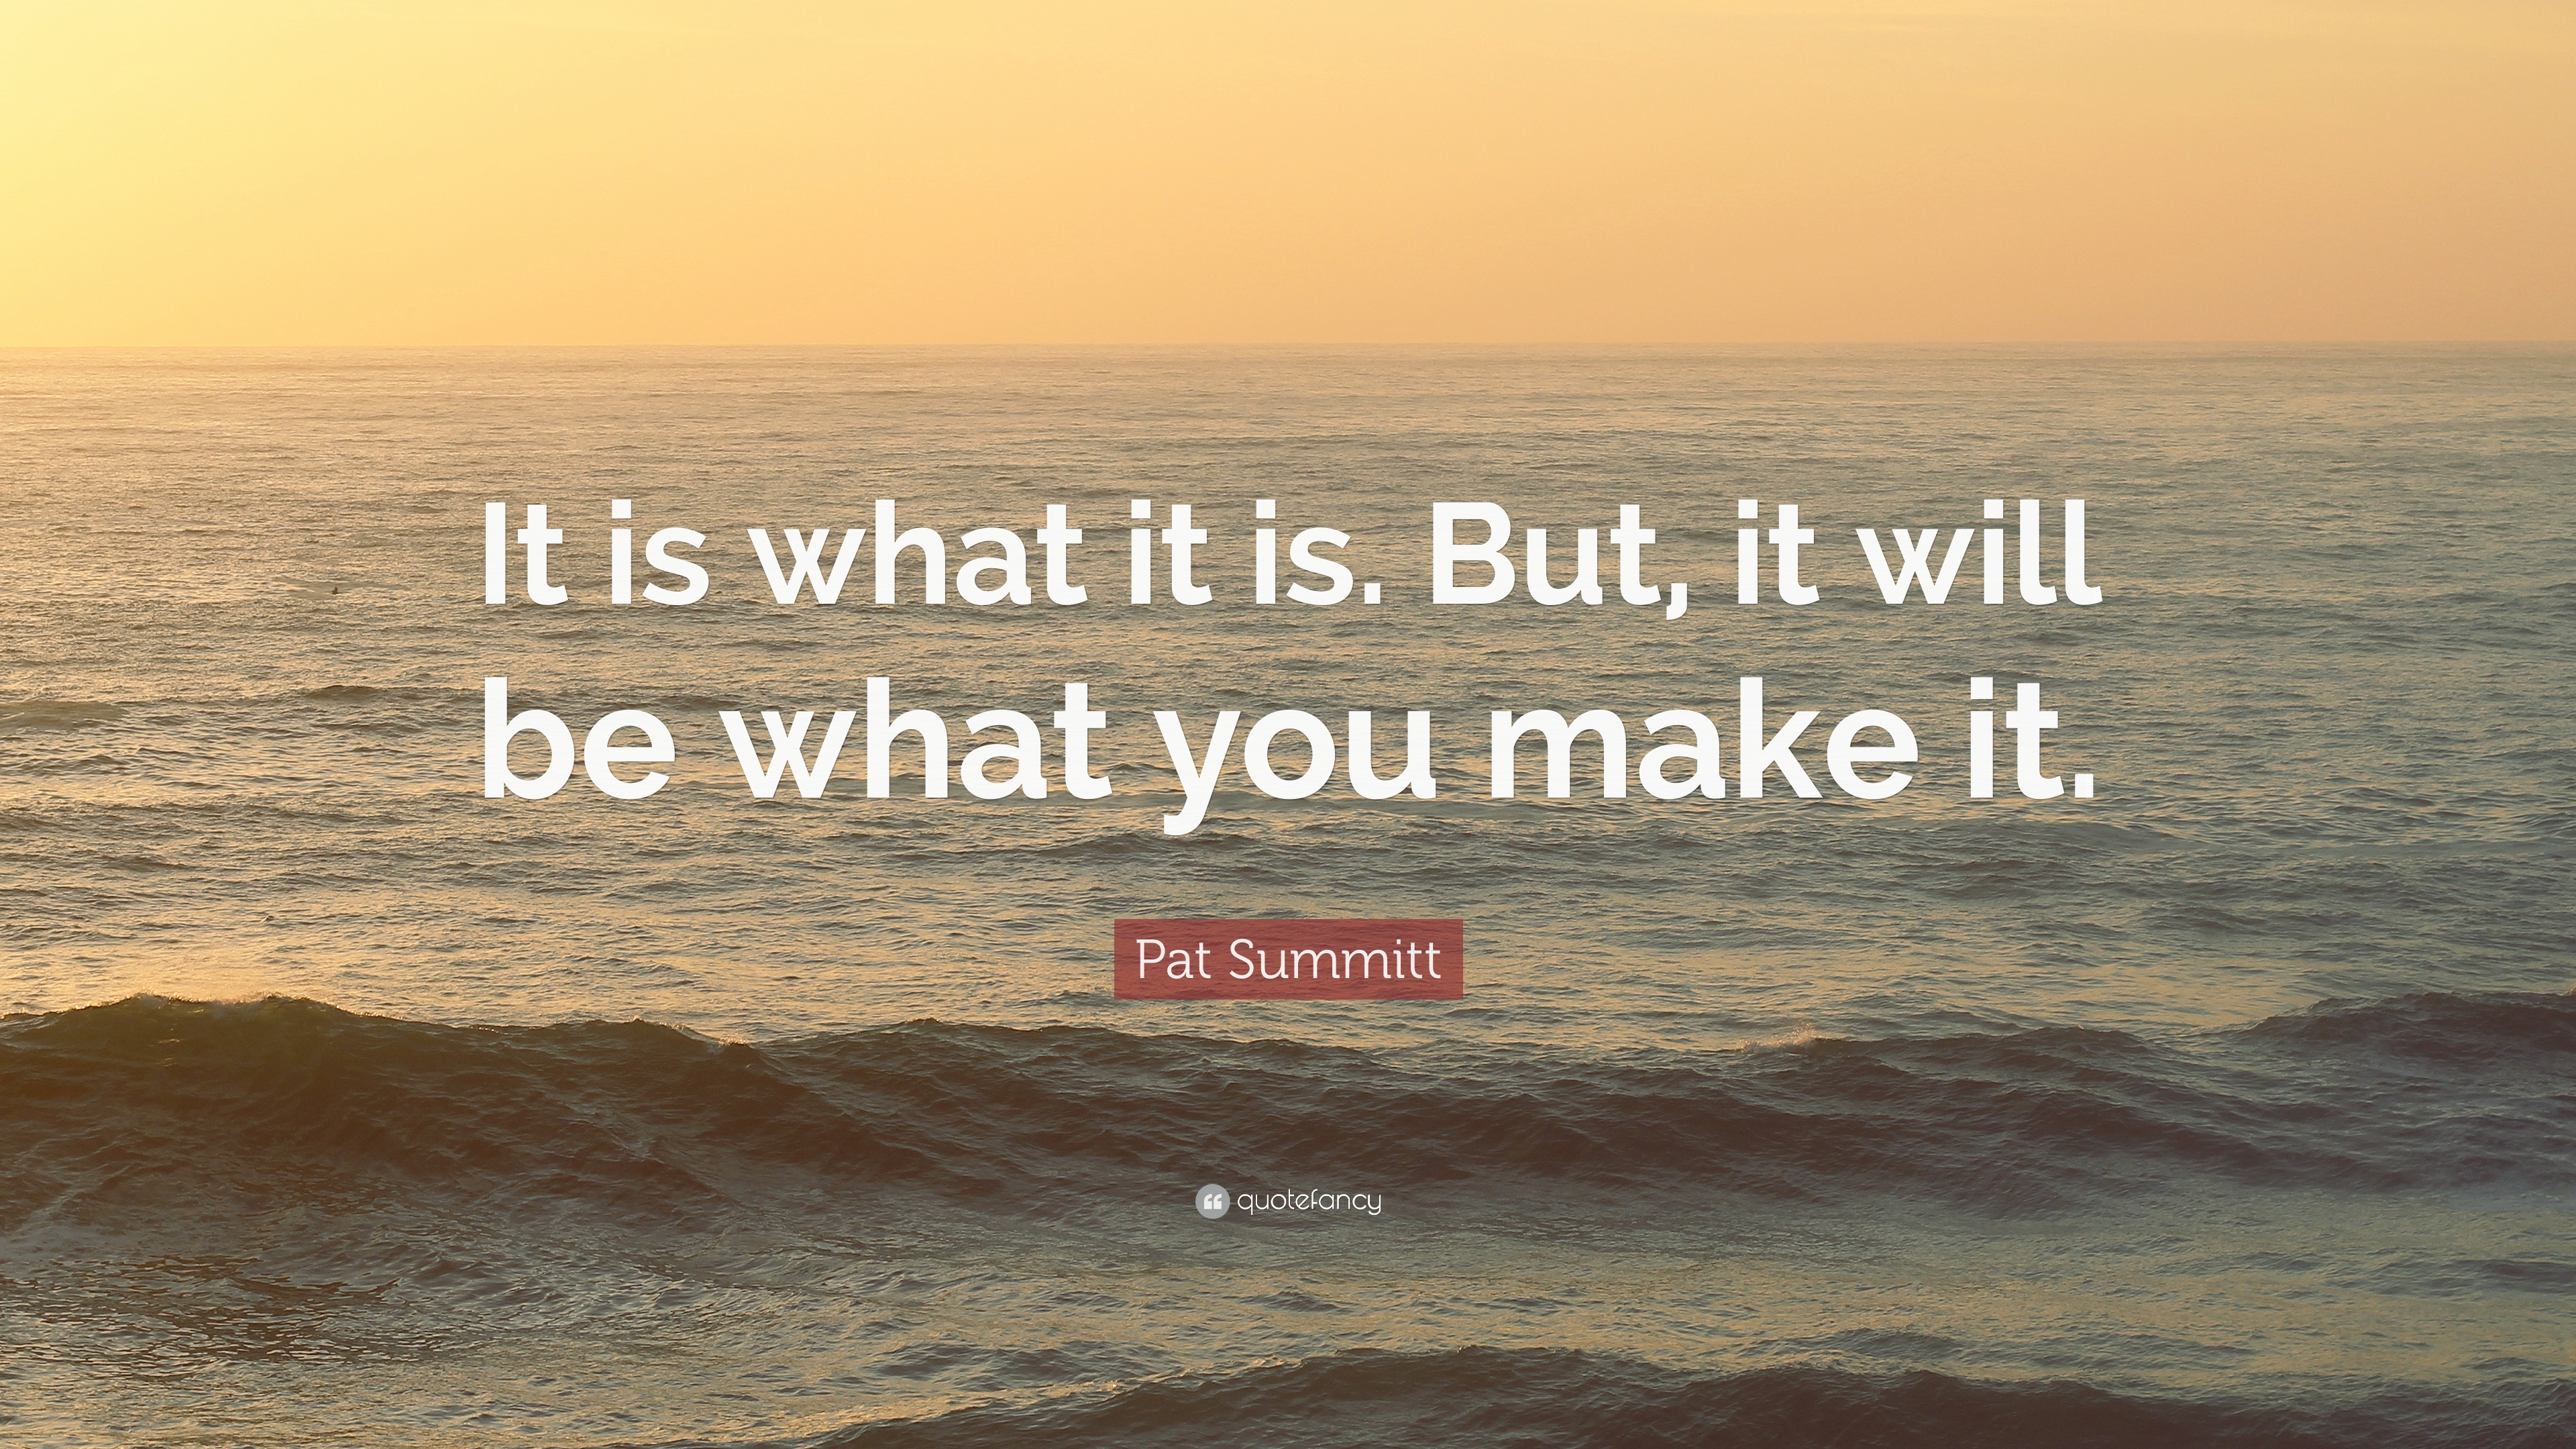 Pat Summitt Quote It Is What It Is But It Will Be What You Make